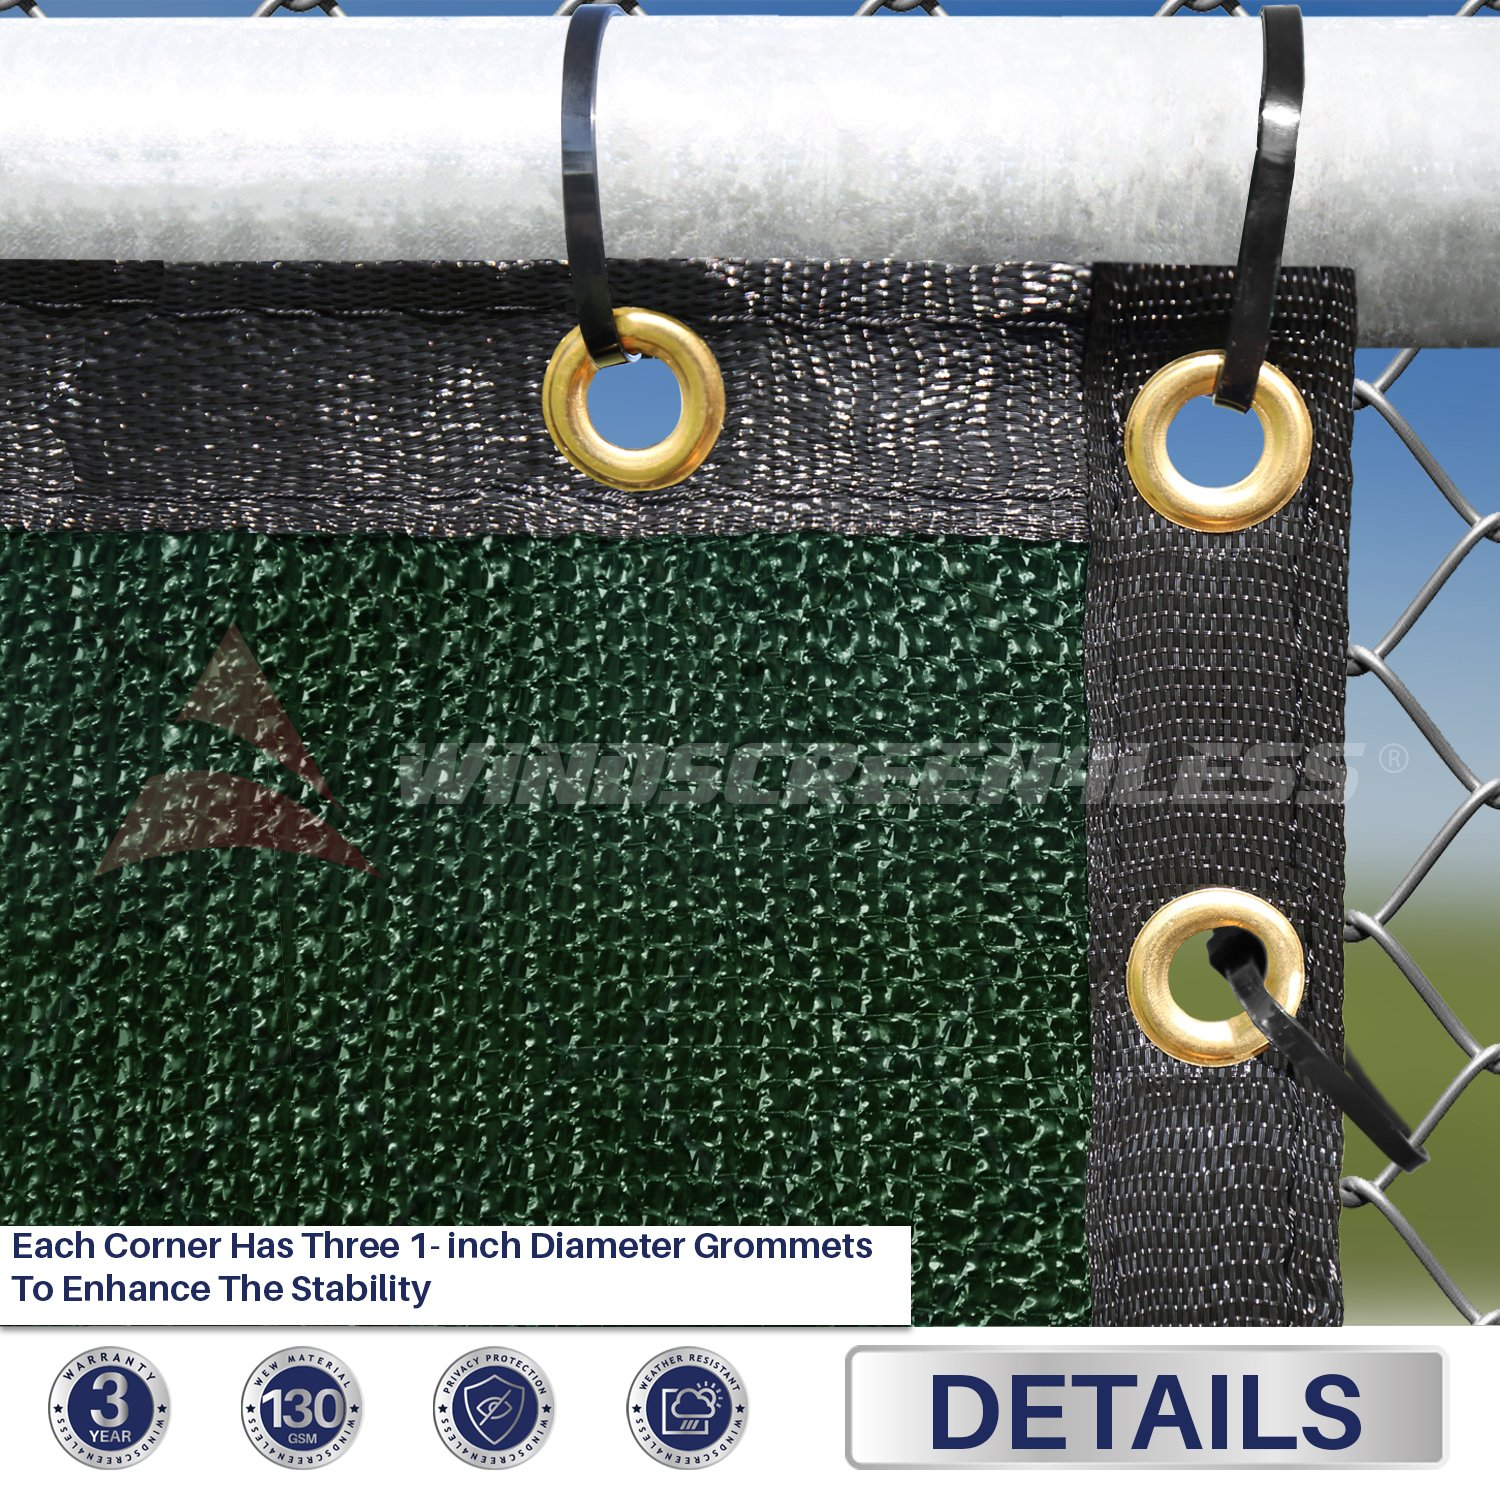 Privacy screen for chain link fence ebay - Amazon Com Windscreen4less Heavy Duty Privacy Screen Fence In Color Solid Green 6 X 50 Brass Grommets W 3 Year Warranty 130 Gsm Customized Sizes